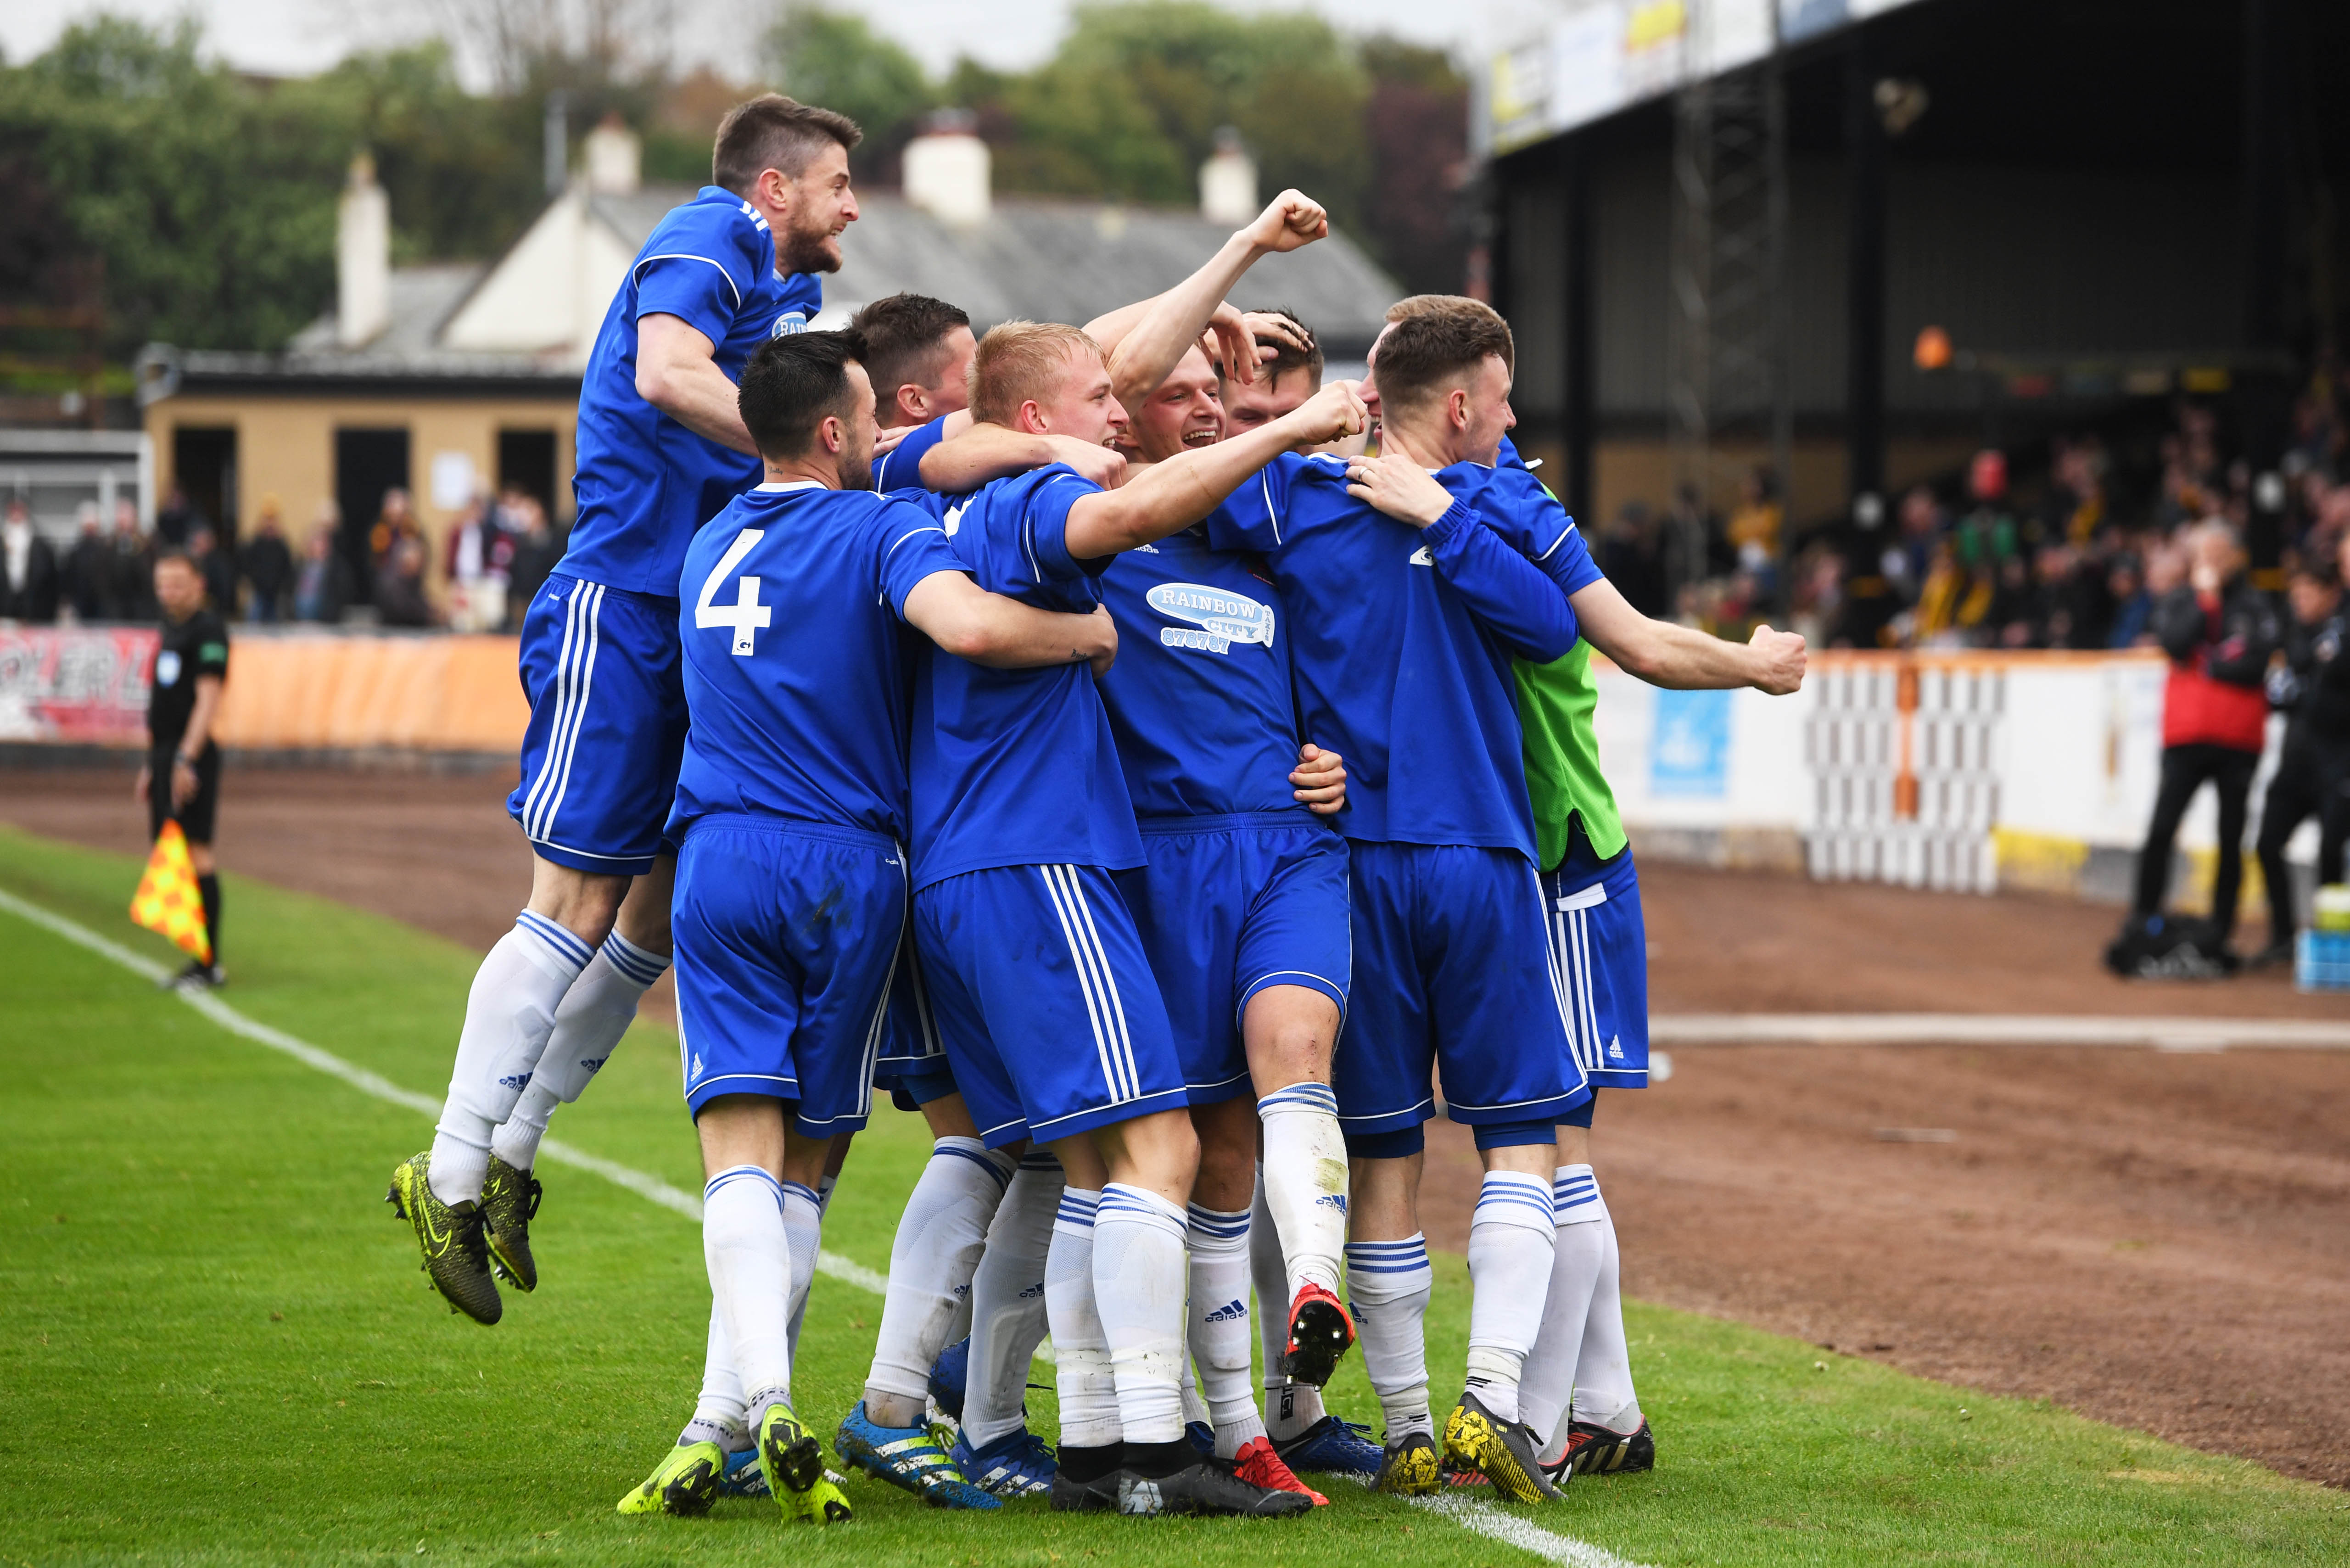 Cove players celebrate with Jordon Brown after his goal against Berwick.